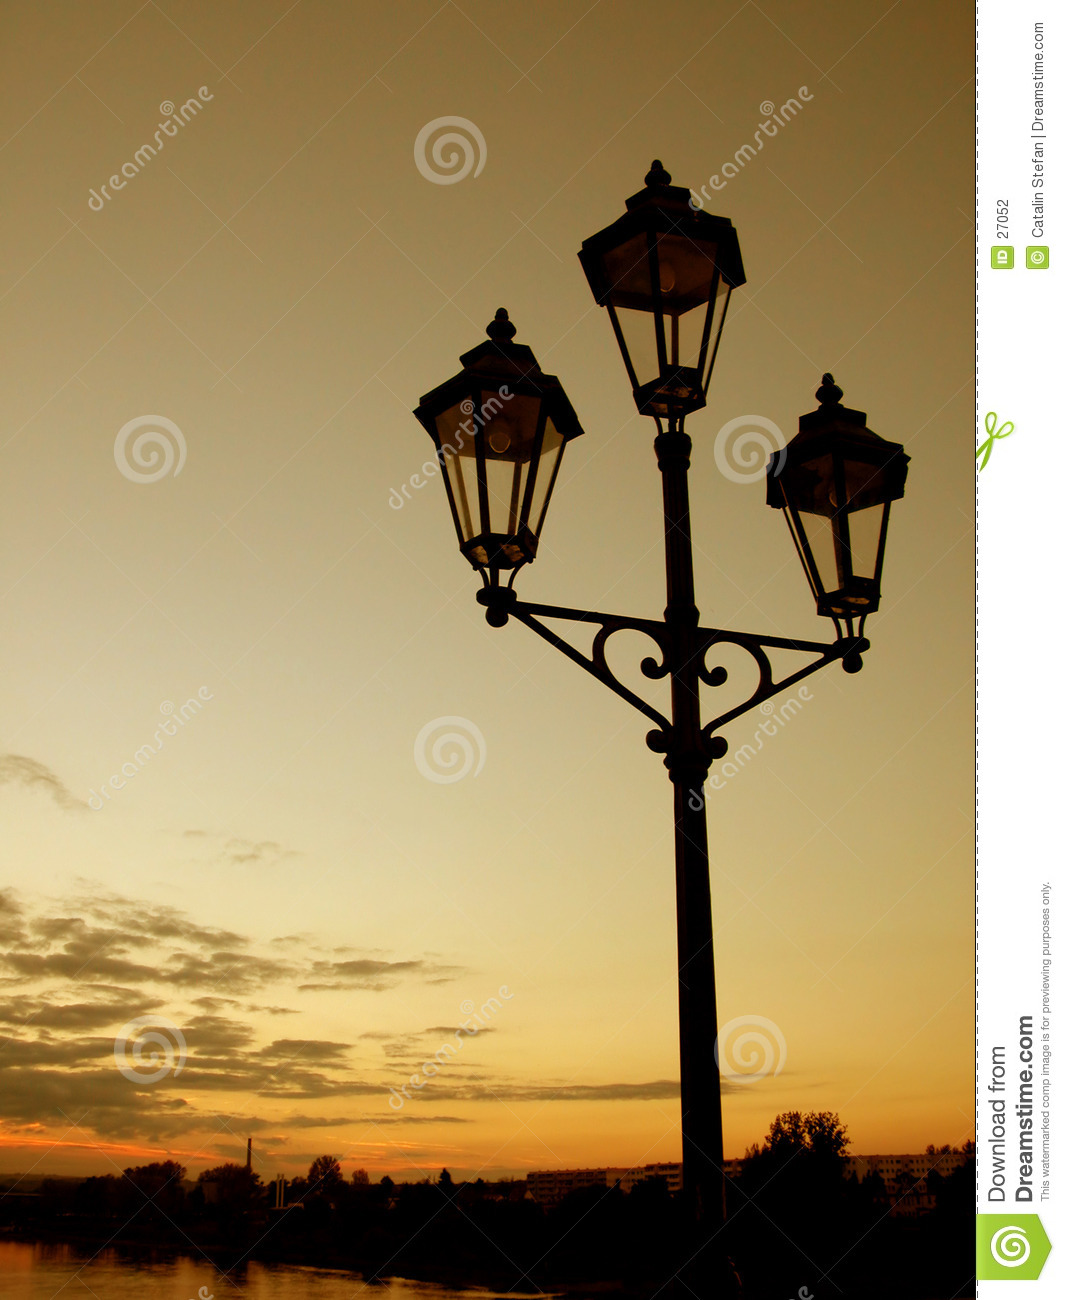 Lamppost at sunset